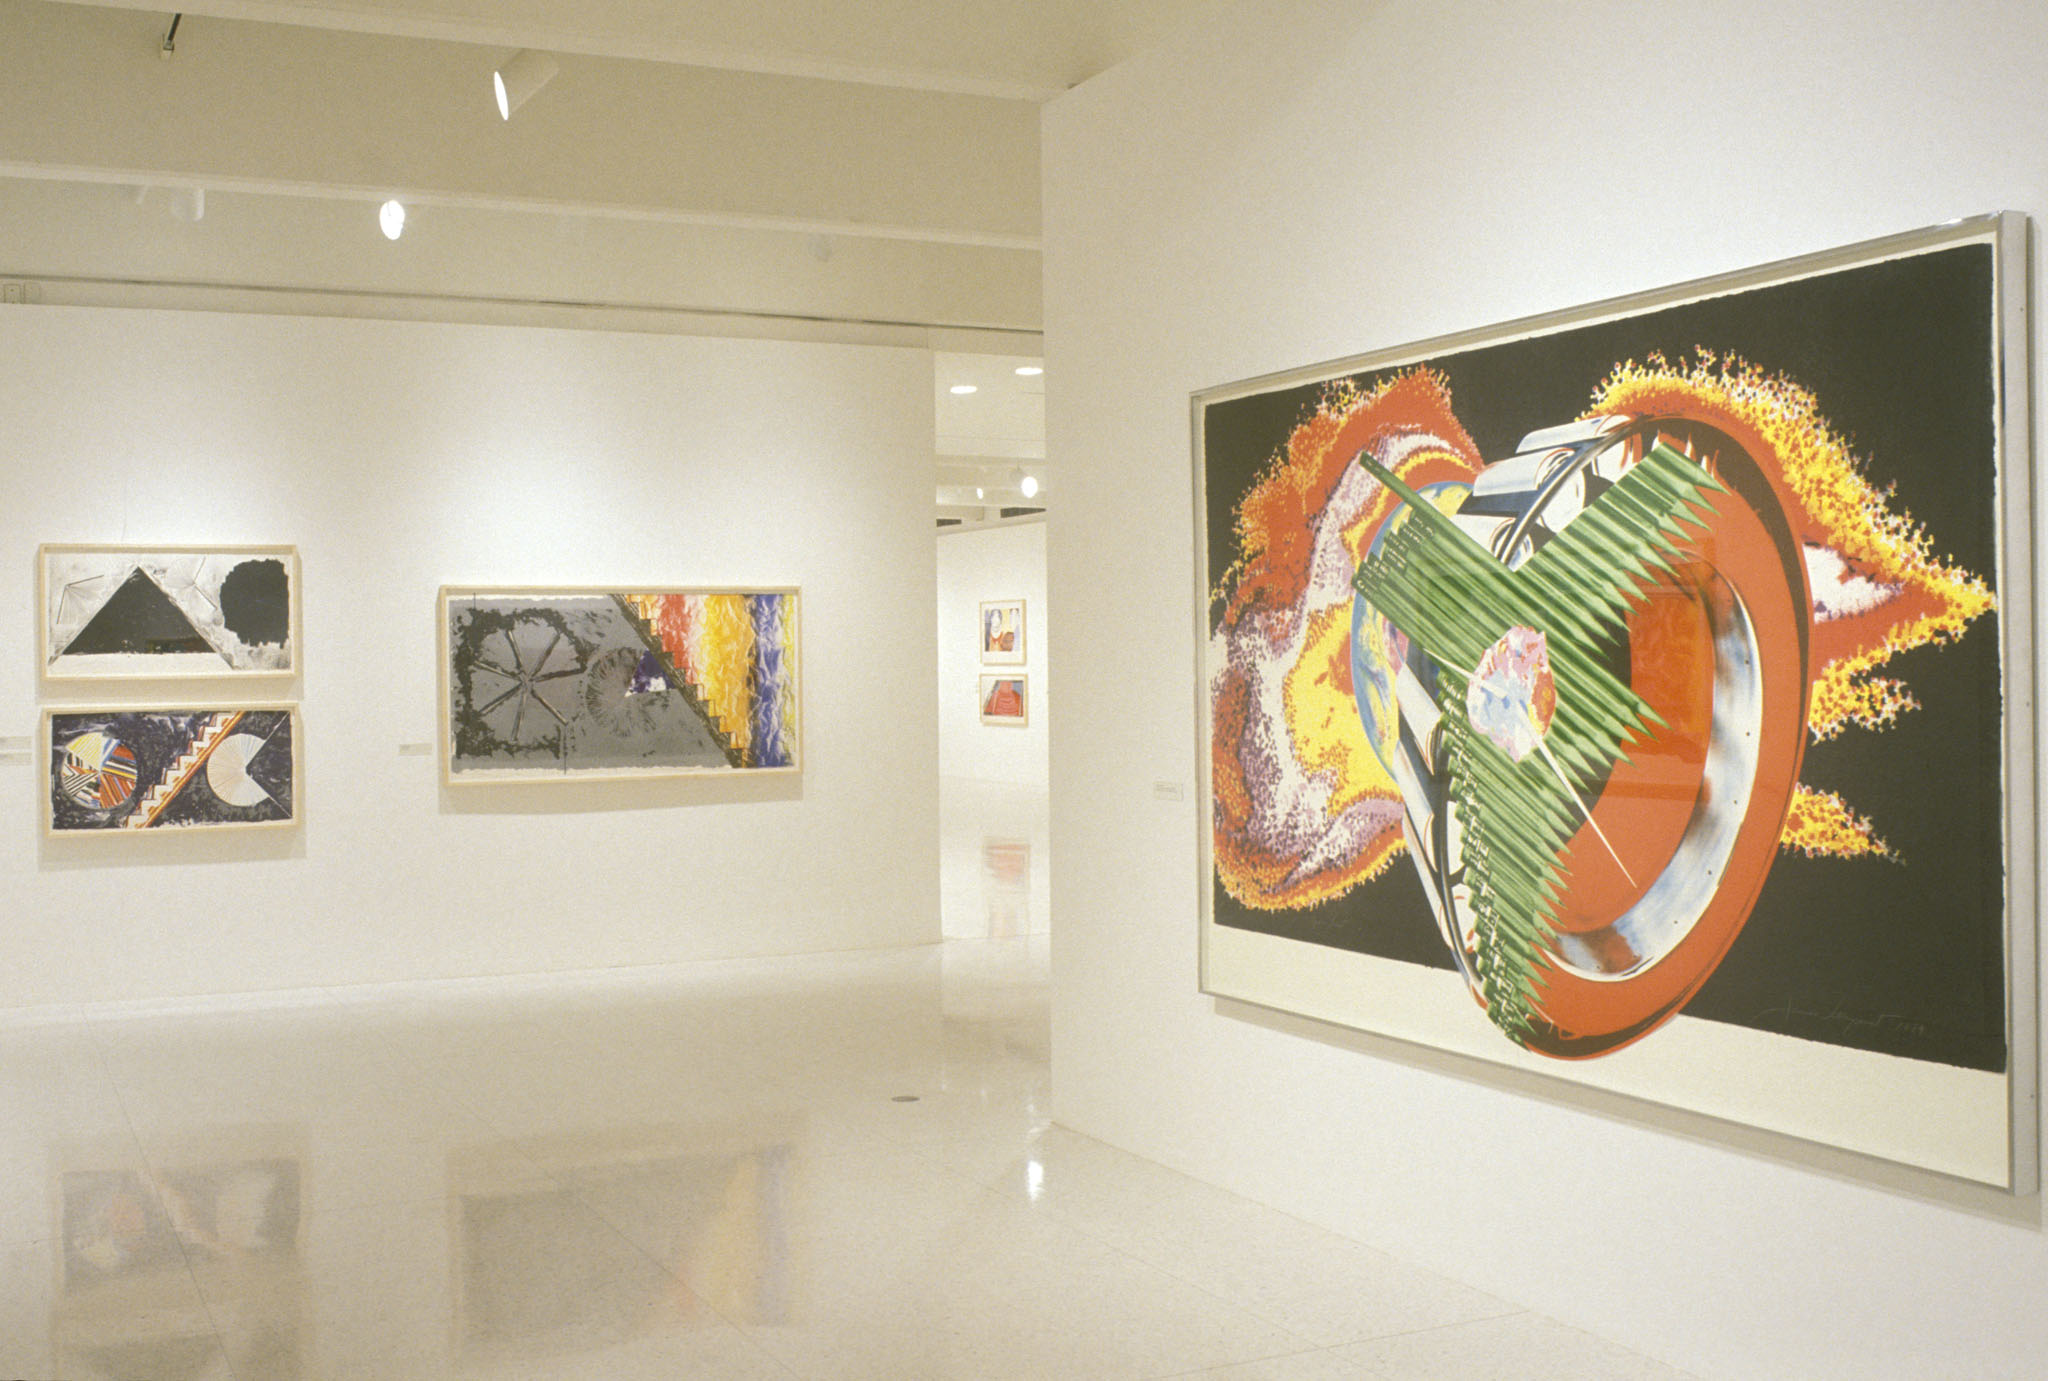 EX1993jr_ins James Rosenquist:Time Dust, The Complete Graphics 1962-1992 Mar 7- May 9, 1993 disc location: 161.ex_b